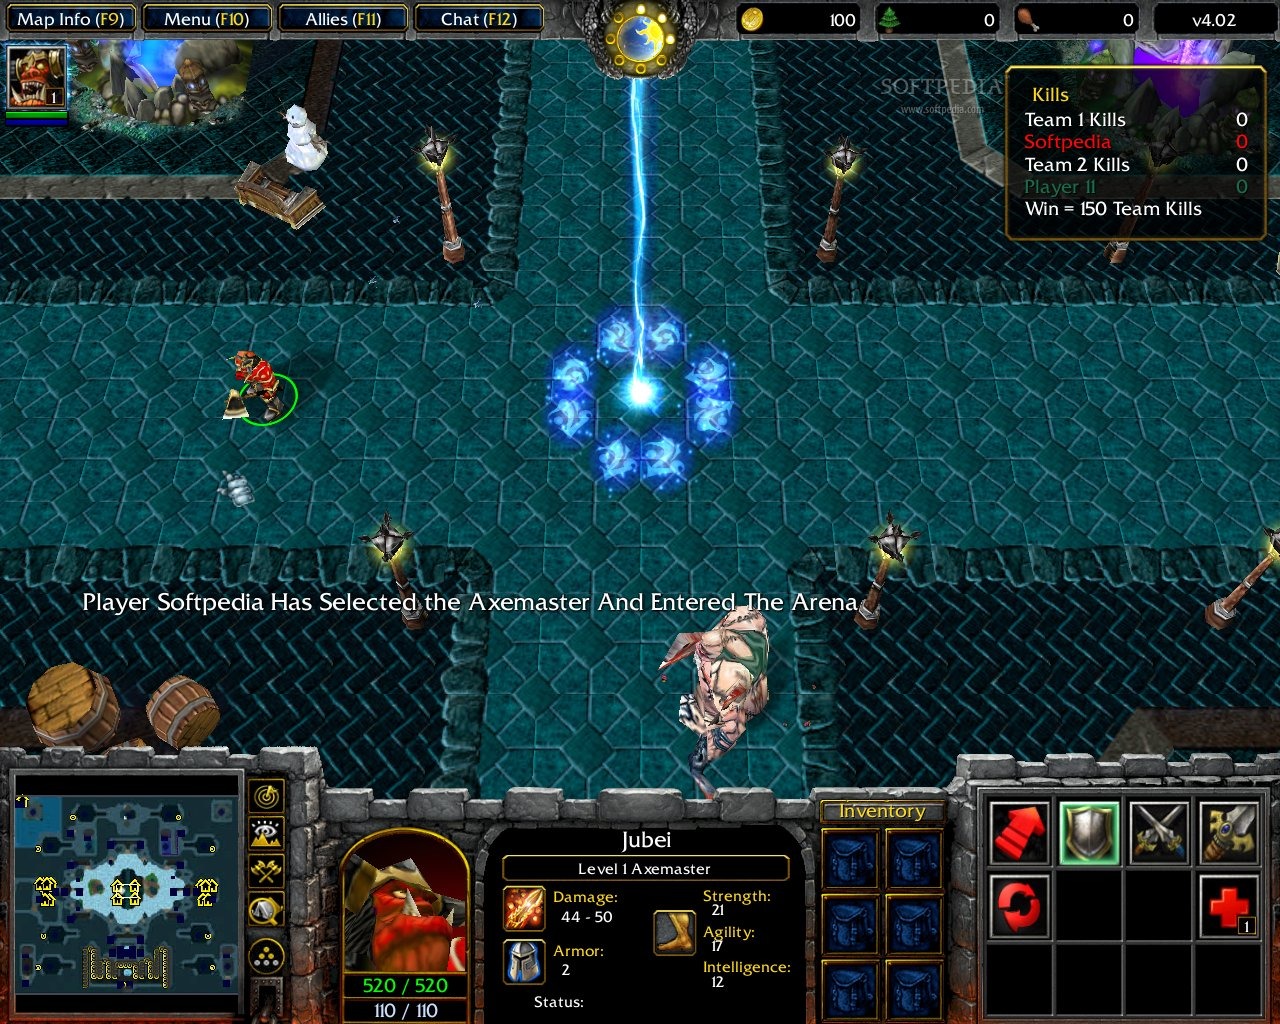 Get manual how to update warcraft 3 world editor warcraft 3 map editor download full gumiabroncs Image collections